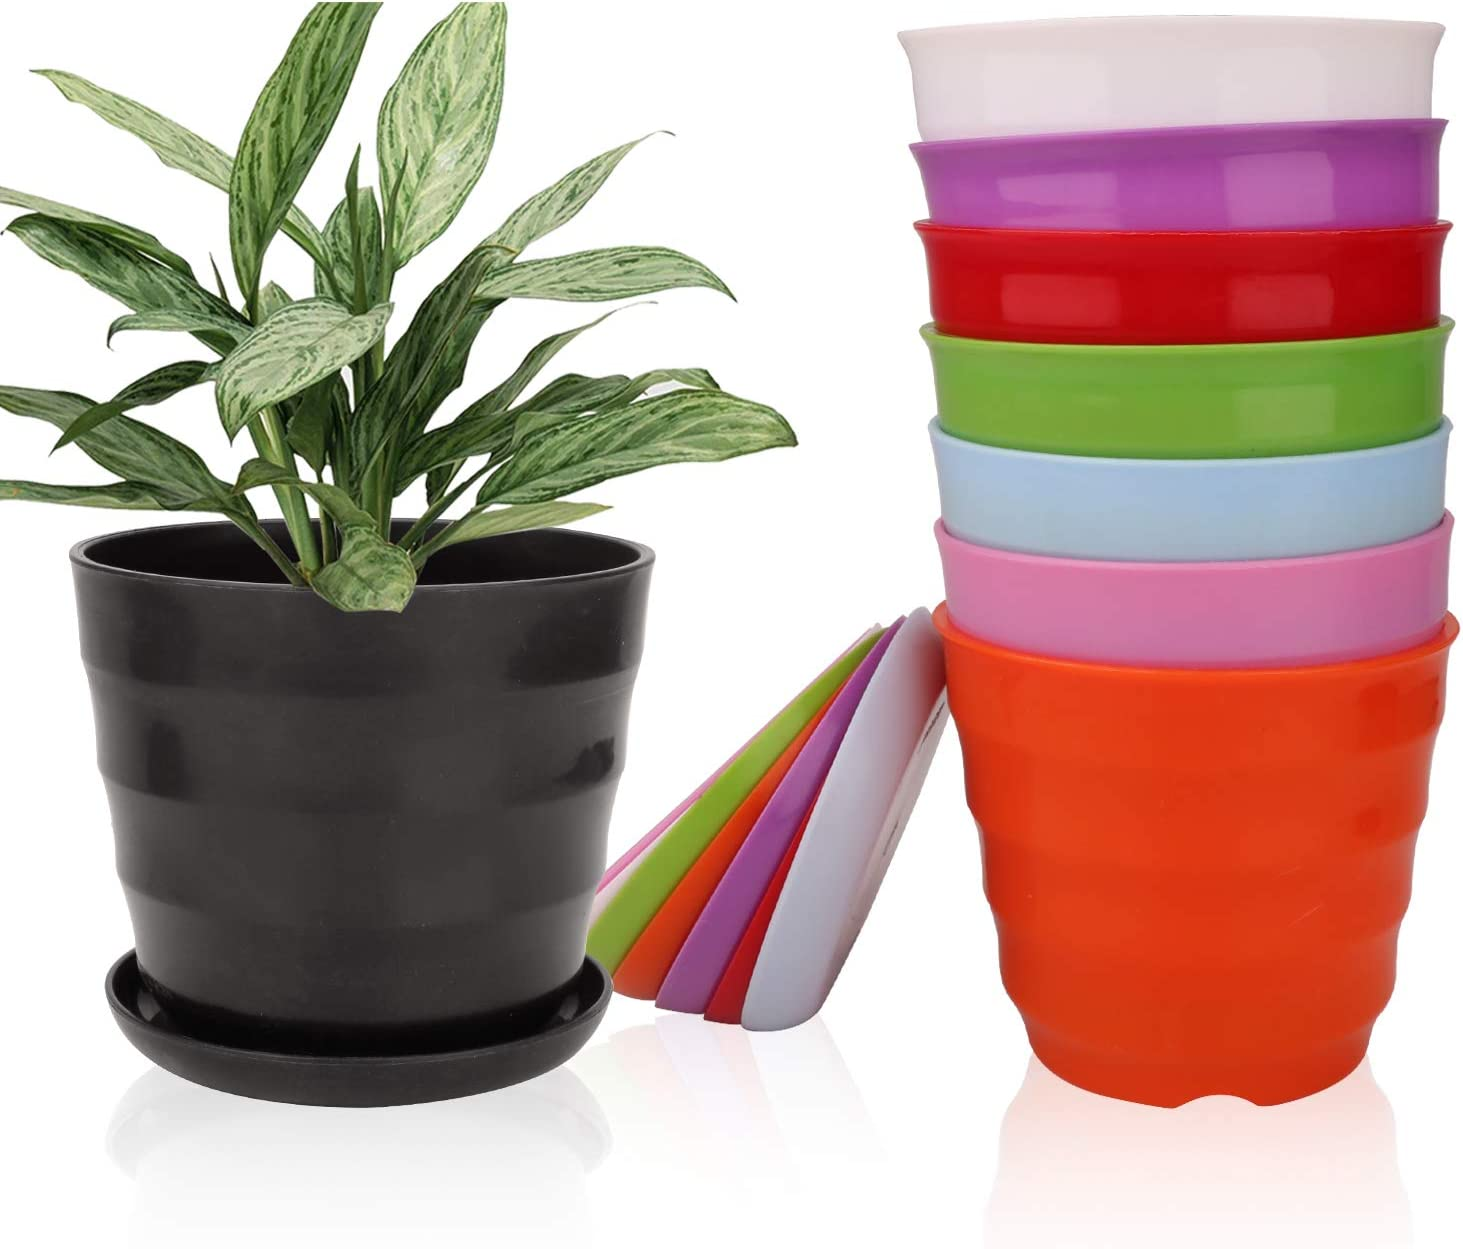 6 Inches Plastic Plant Pots with Drainage Holes, Ufrount Gardening Containers, Flower Pots, Perfect for Garden/Yard/Kitchen/Flower/Succulents - Set of 10 (10 Colors, Thread Shape)